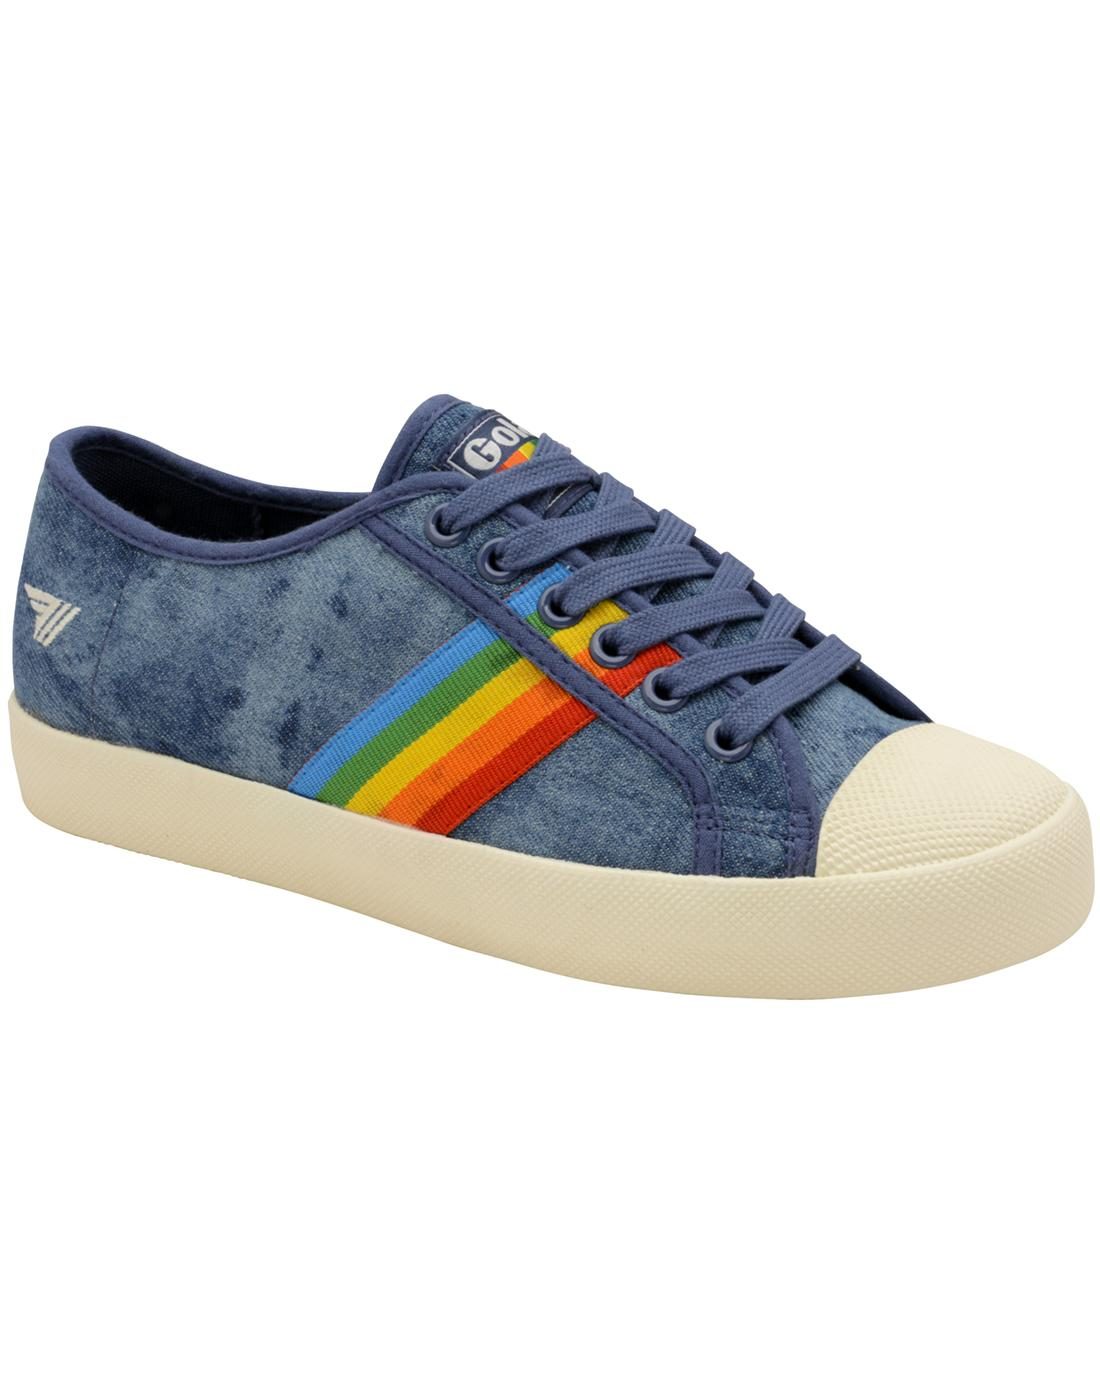 Coaster Rainbow GOLA Retro 90s Canvas Trainers D